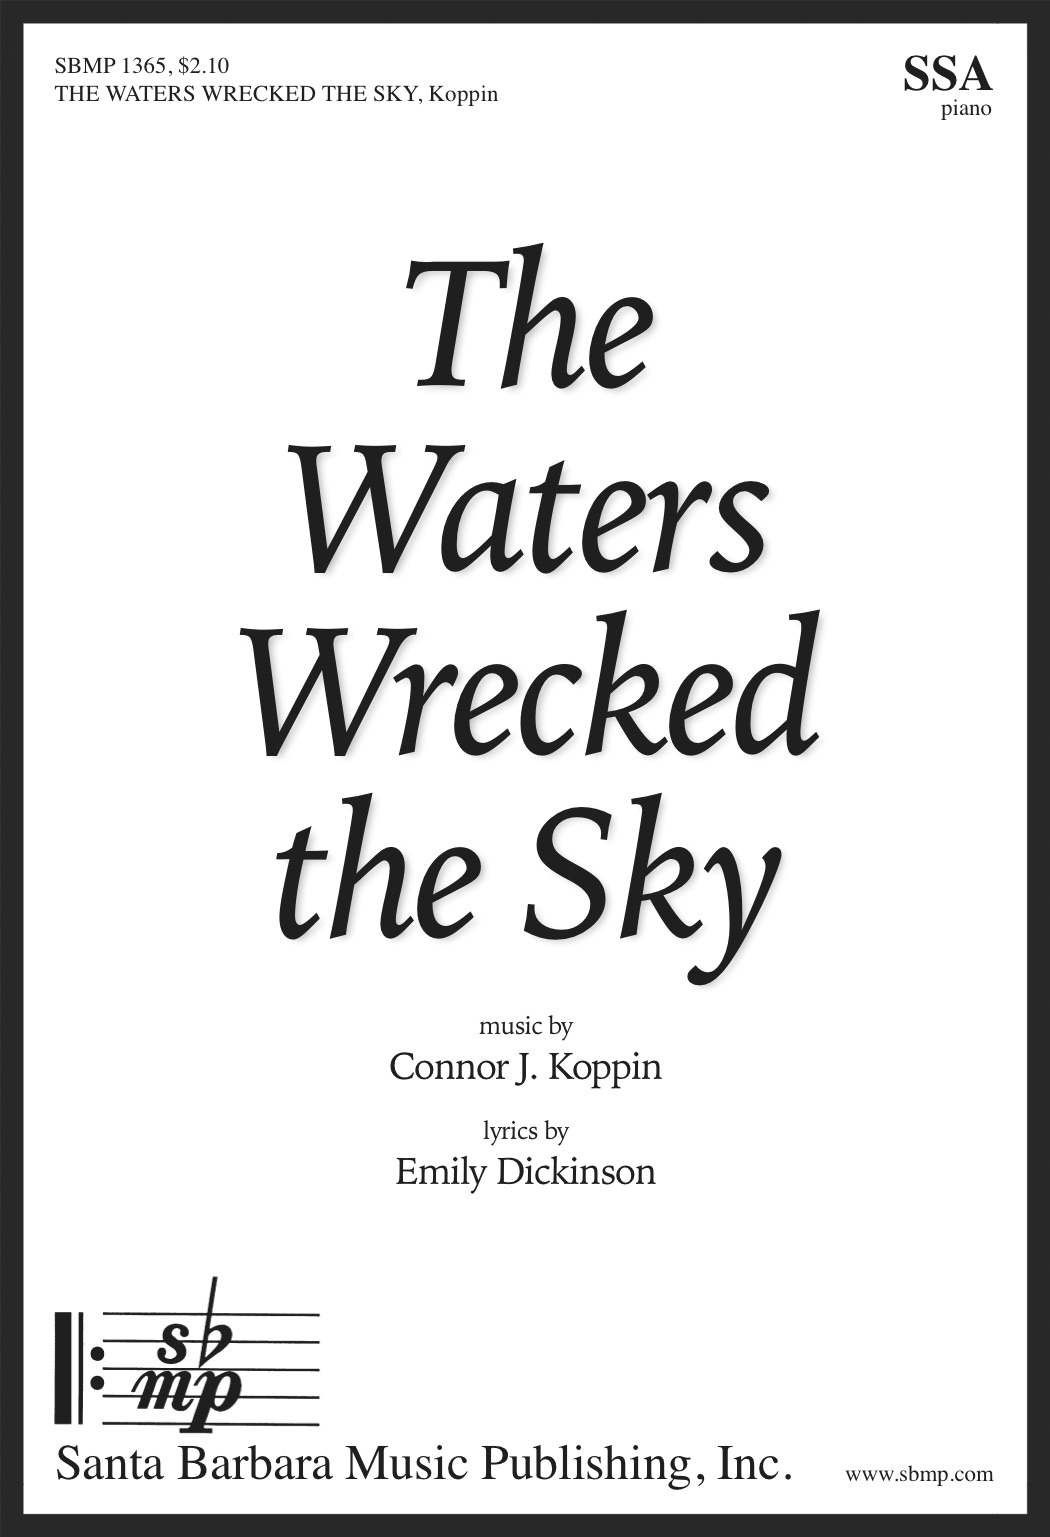 The Waters Wrecked the Sky